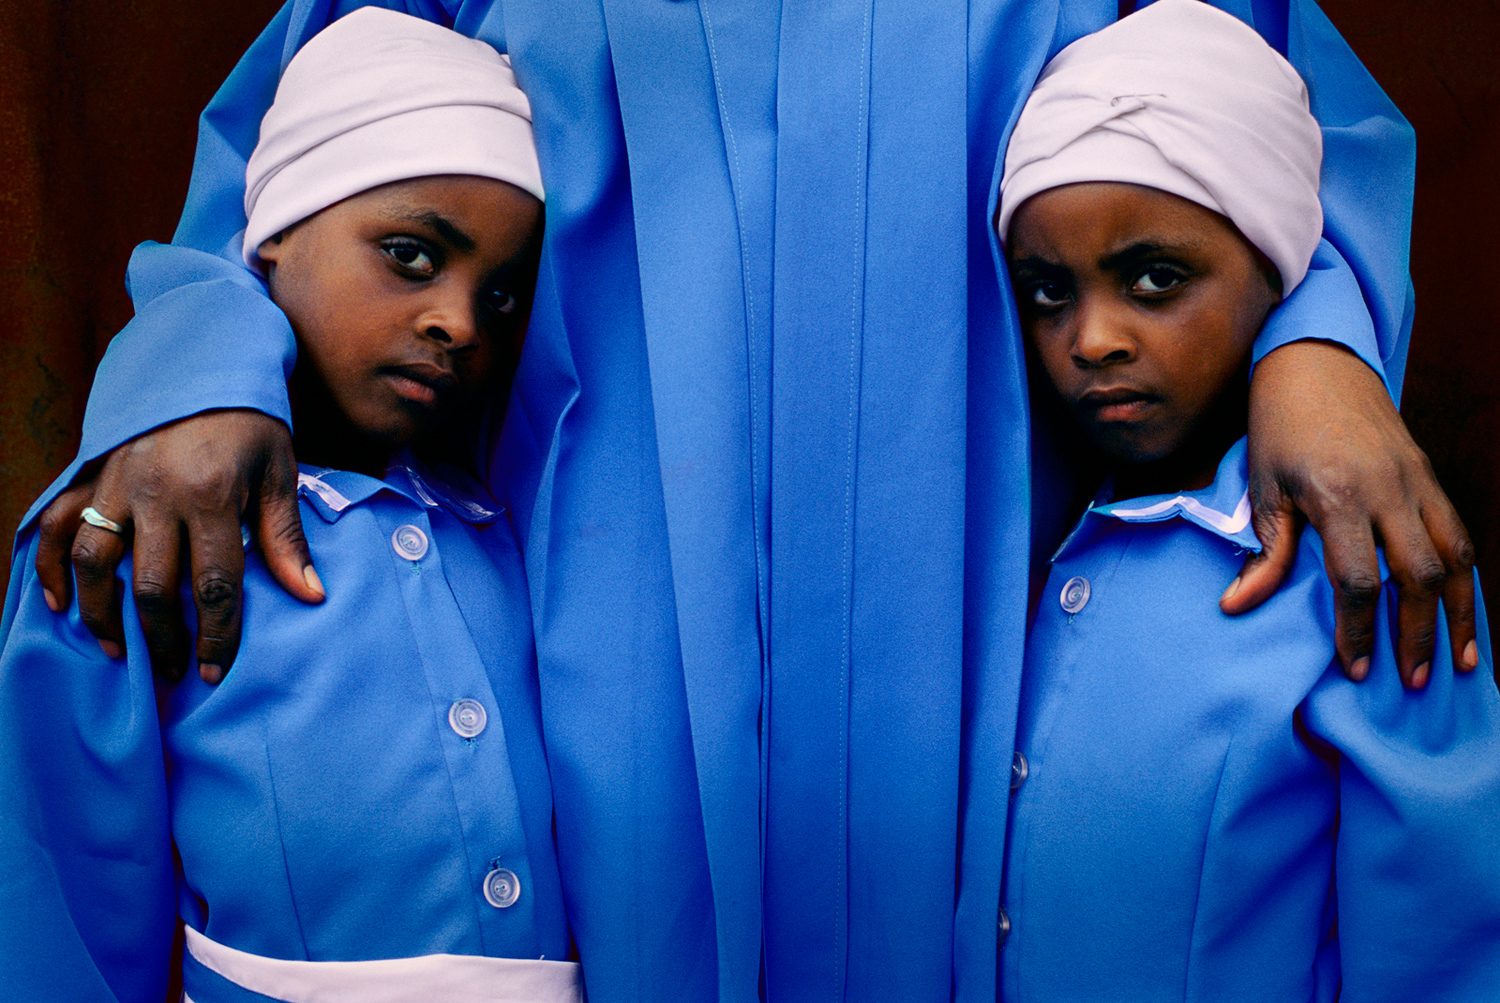 Twin girls attend an early morning church service at a Zion church in Site B Khayelitsha, South Africa, July 2001.